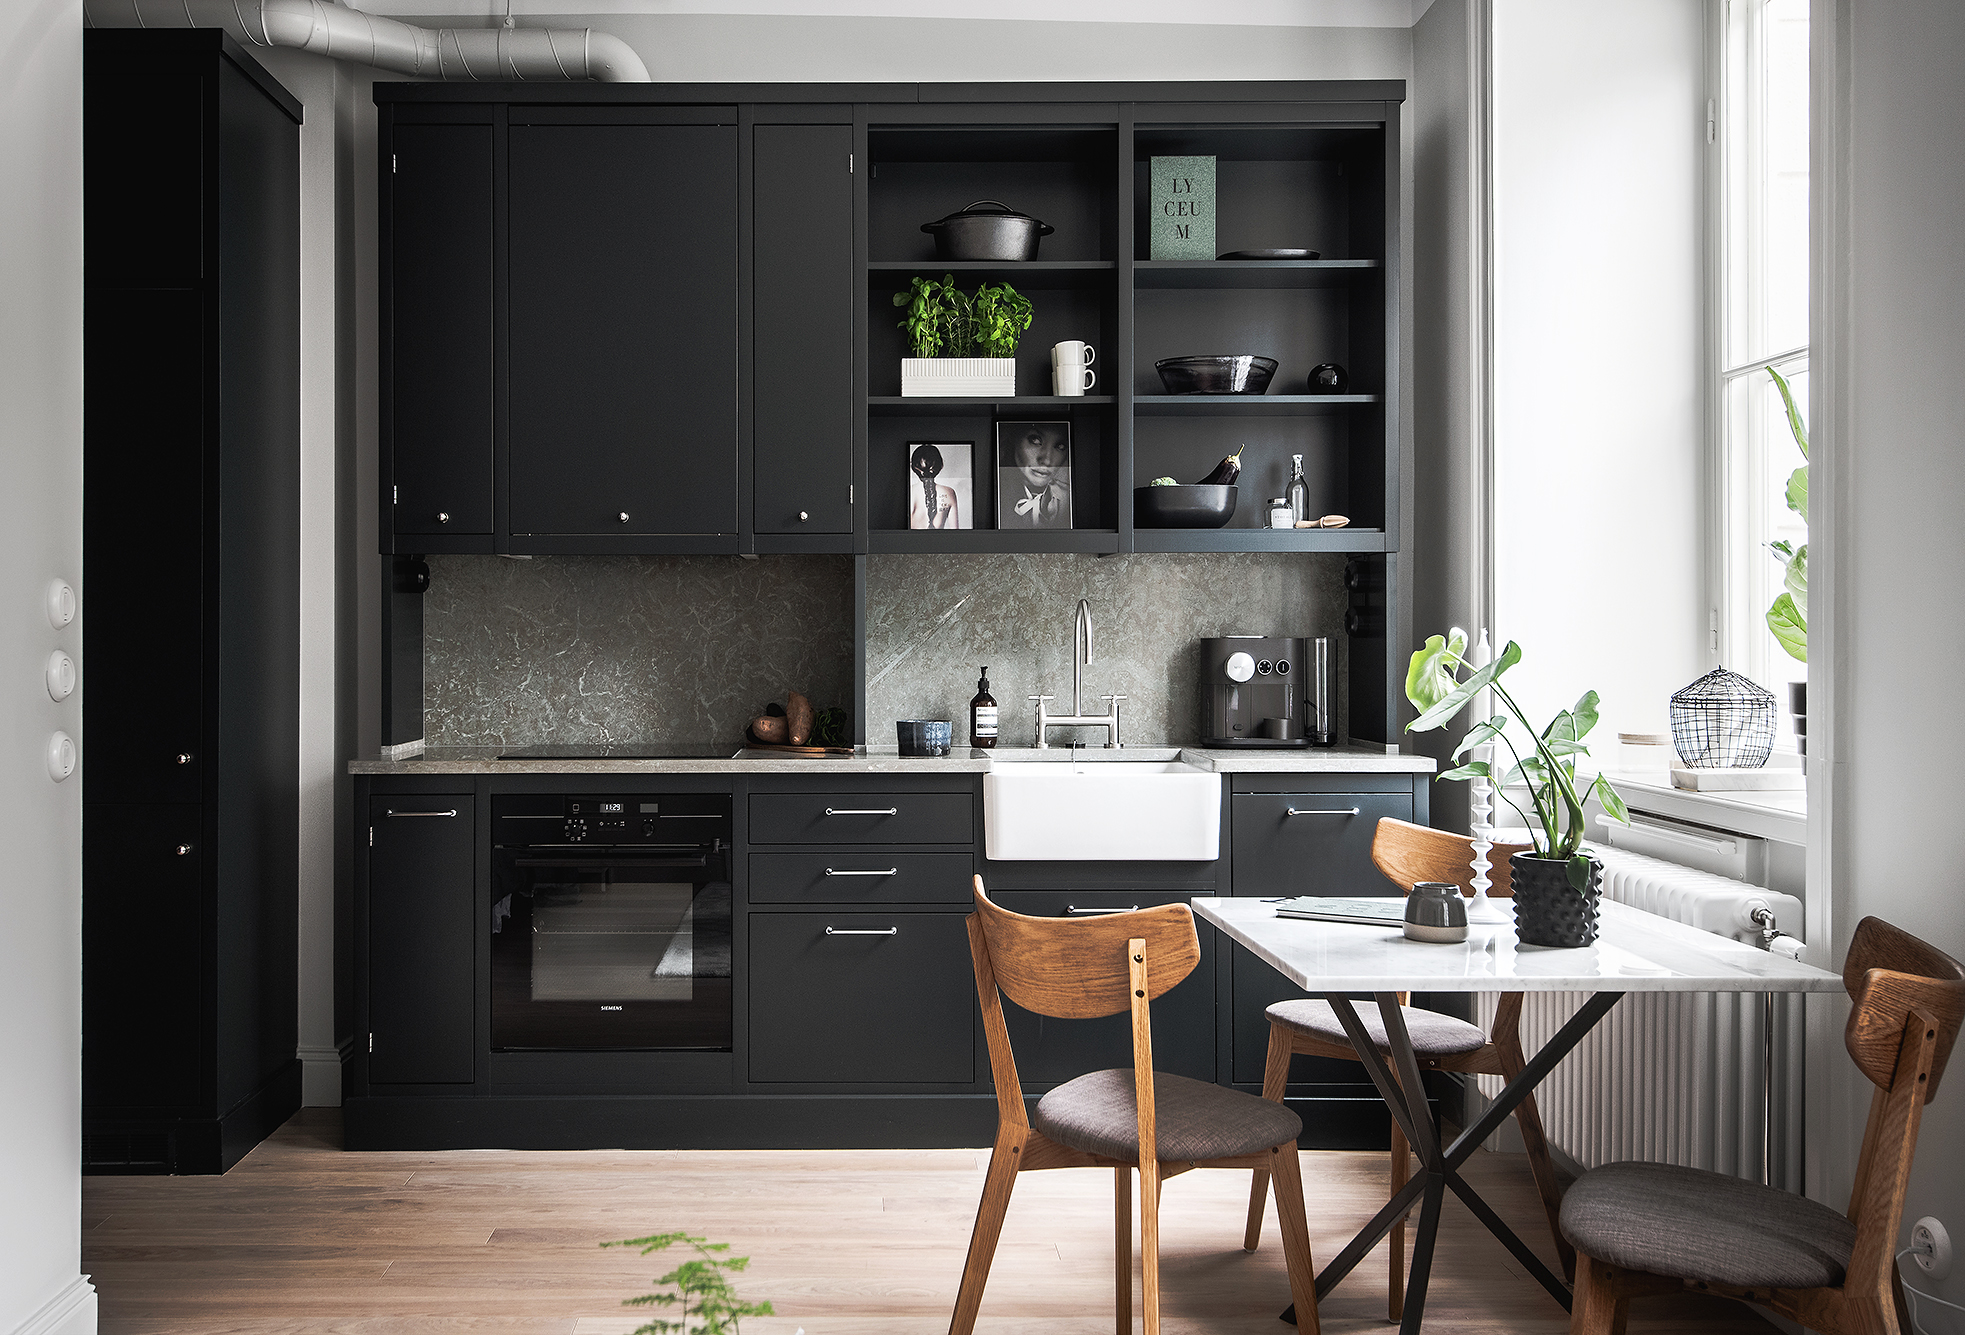 Small Living Space With A Great Kitchen Coco Lapine Design Bloglovin